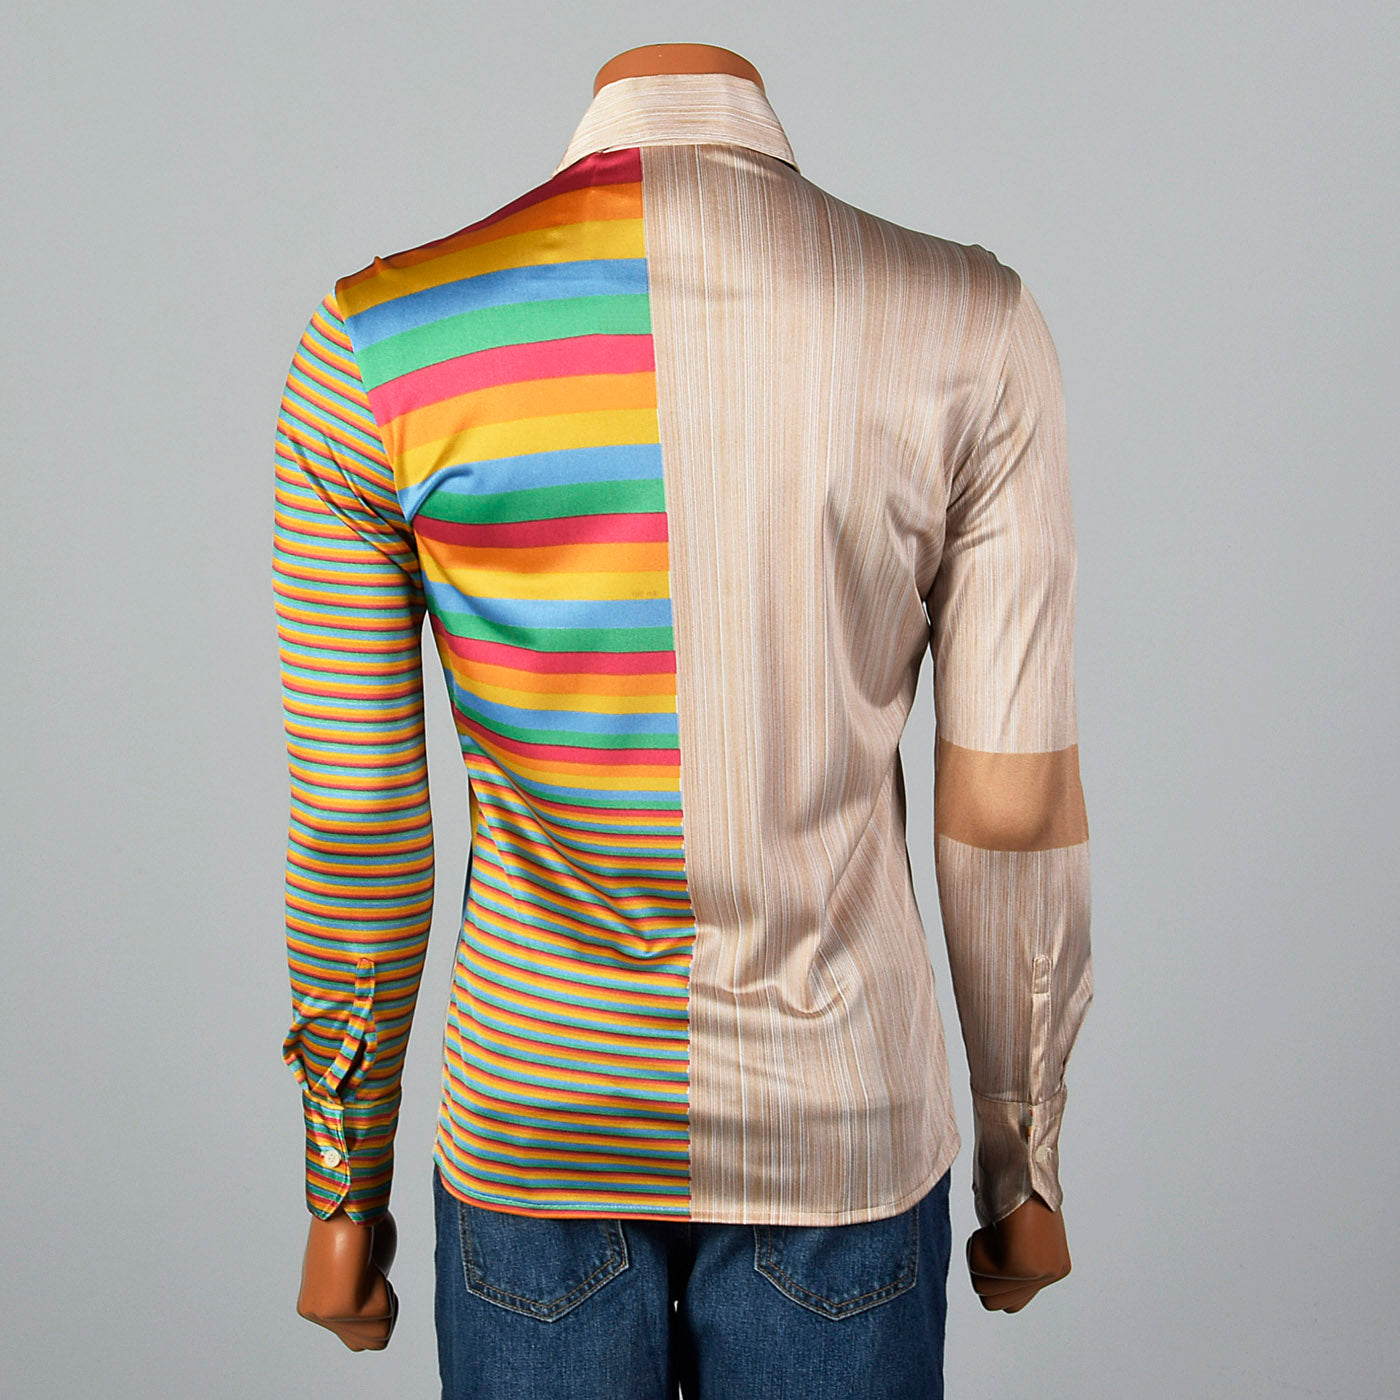 1970s Nik Nik Silky Baseball and Rainbow Print Disco Shirt